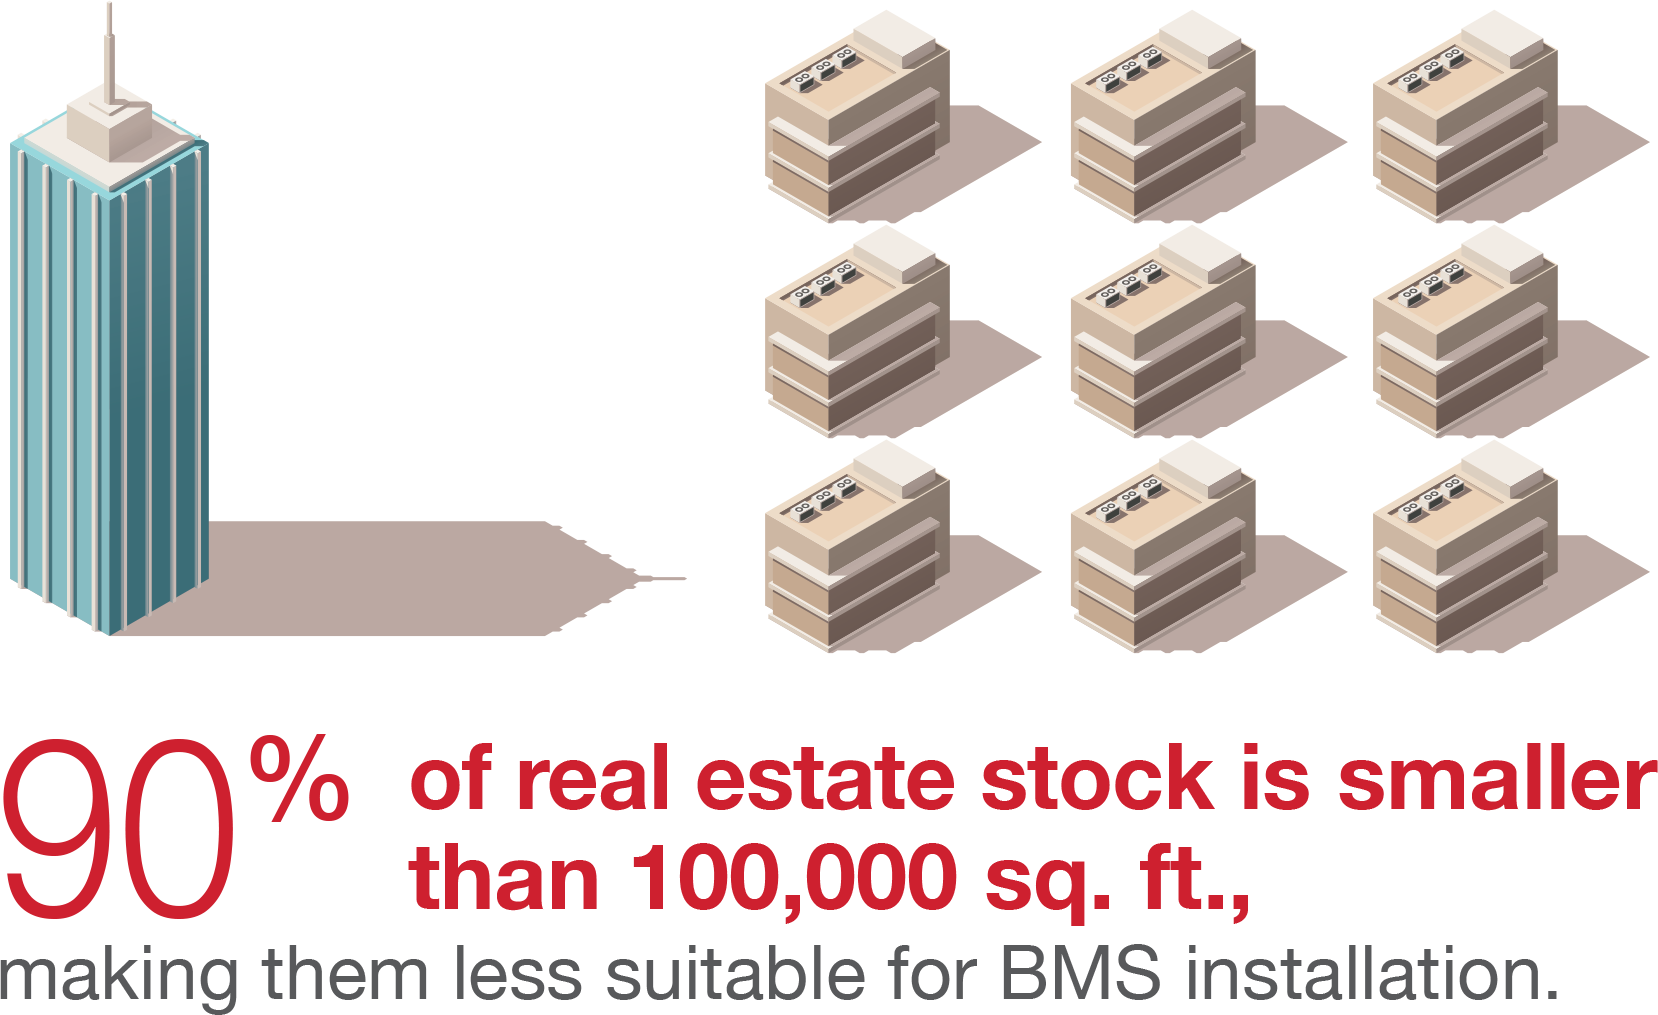 90 percent of real estate stock is less suitable for bms installation